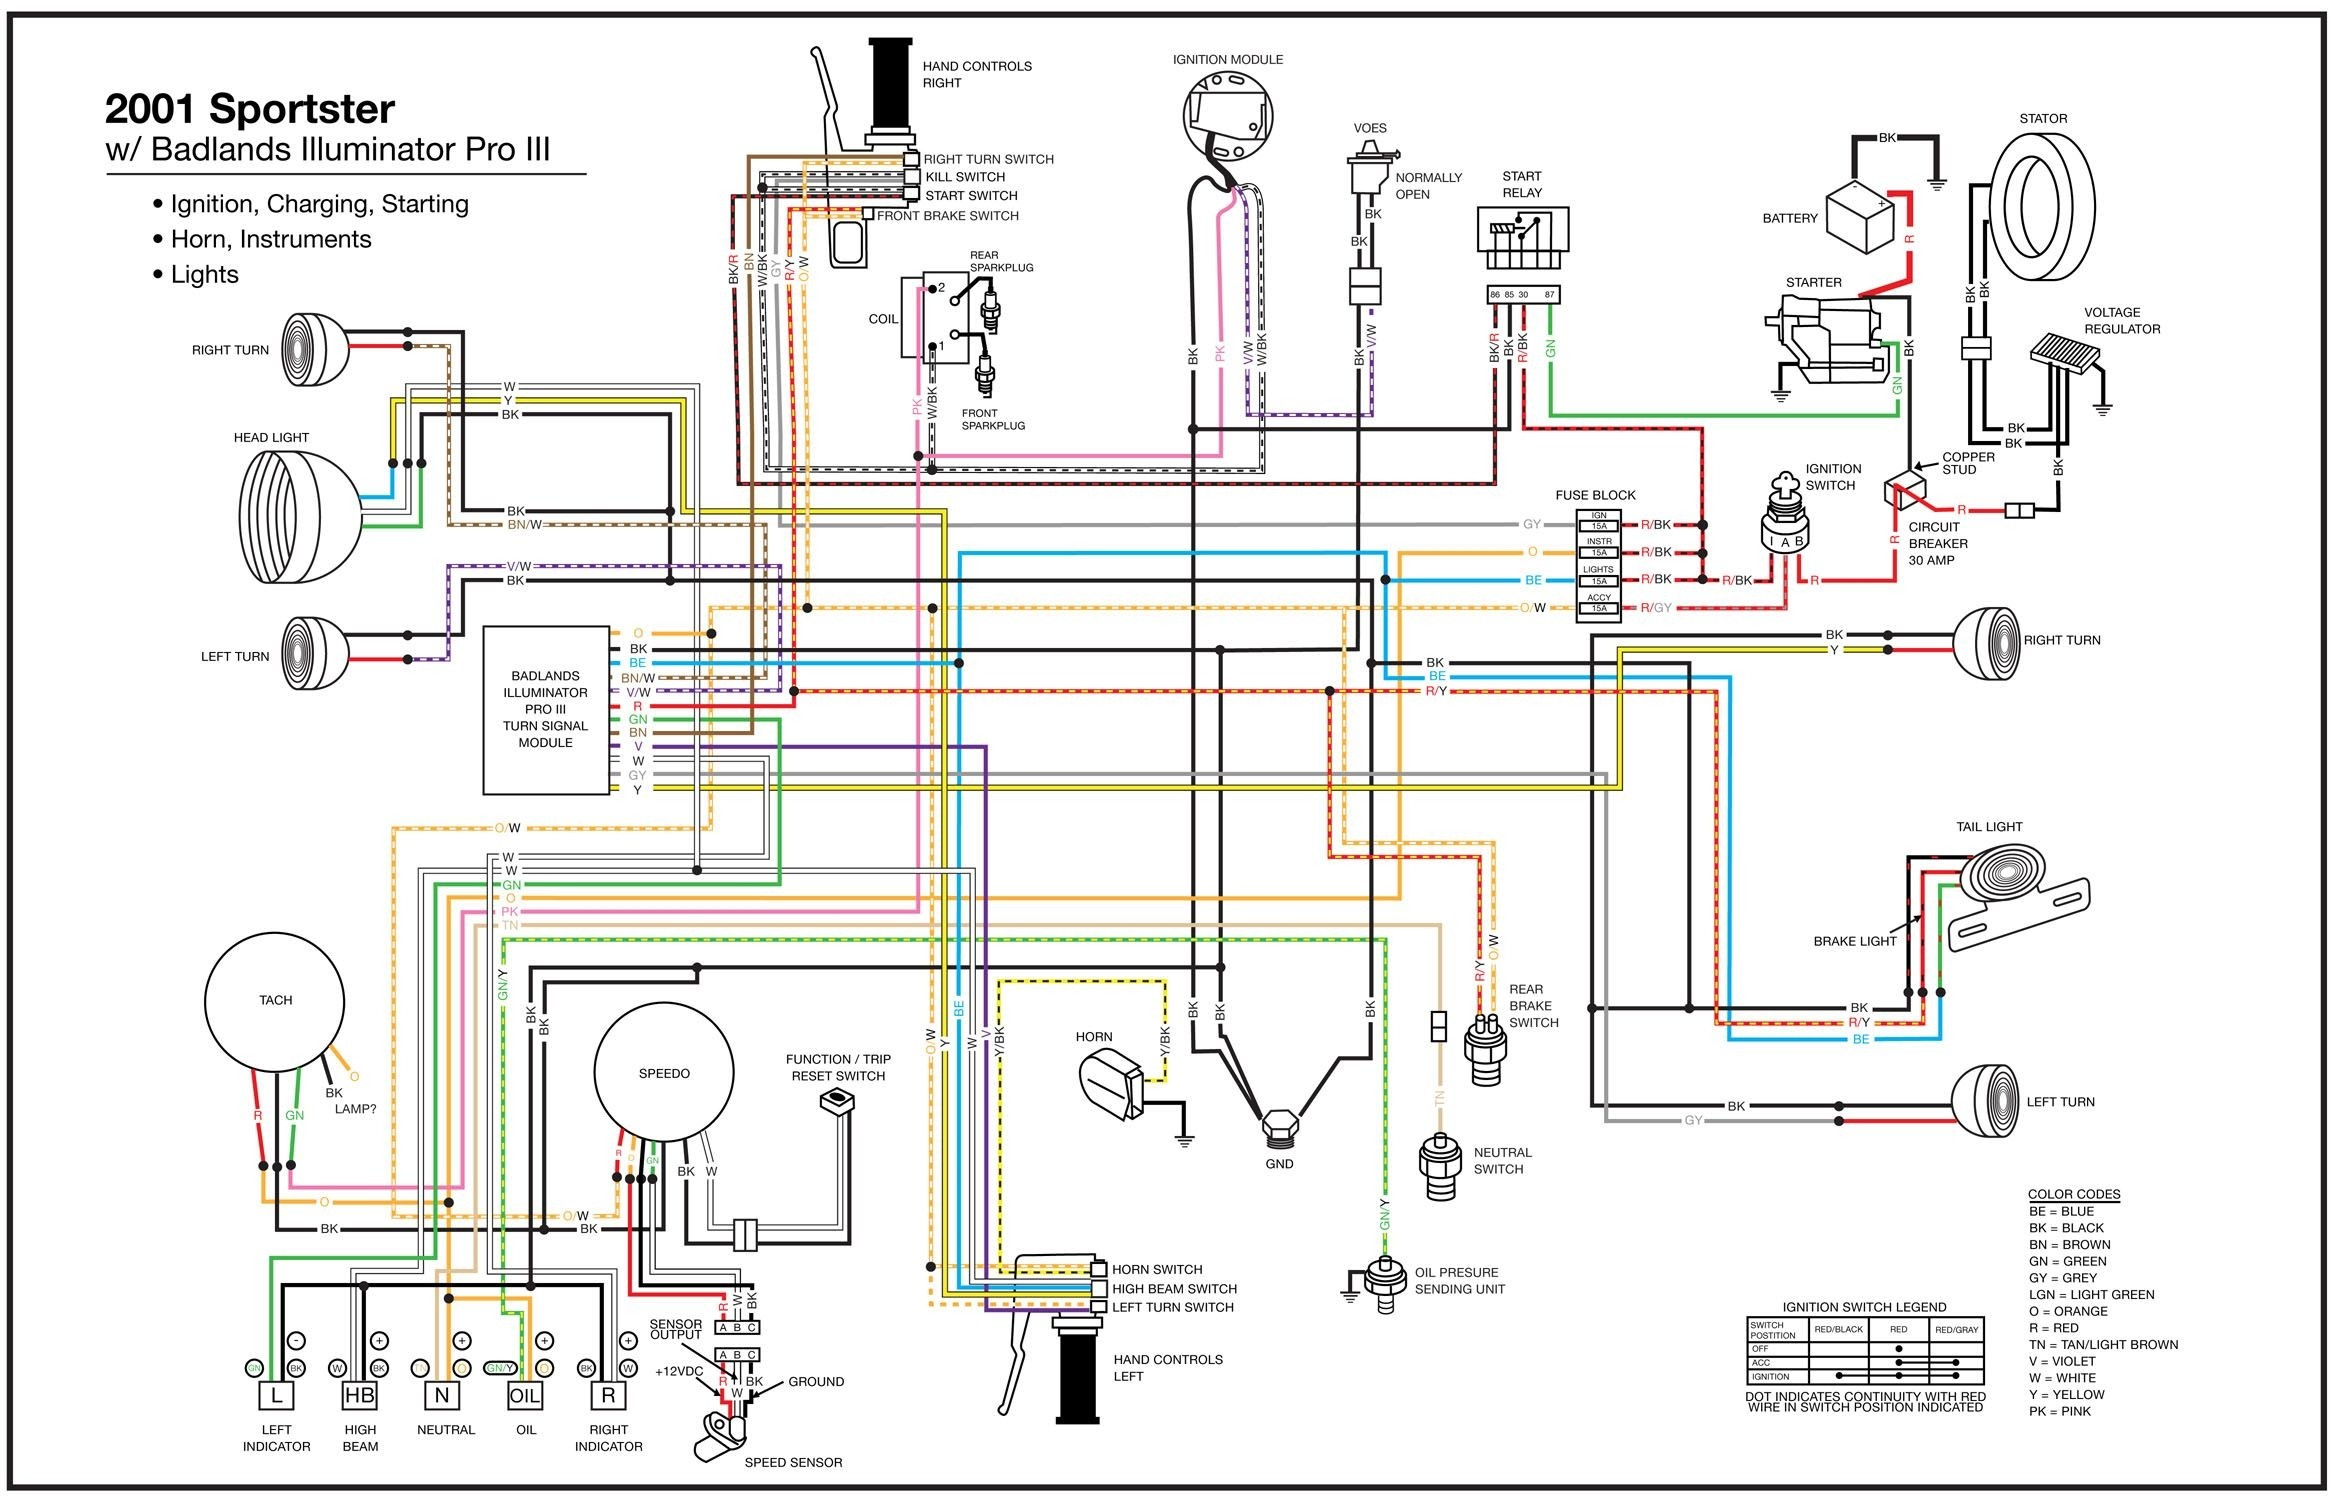 2006 sportster wiring diagram wiring diagram fascinatingharley 2006 sportster wiring harness diagram wiring diagram 2006 harley